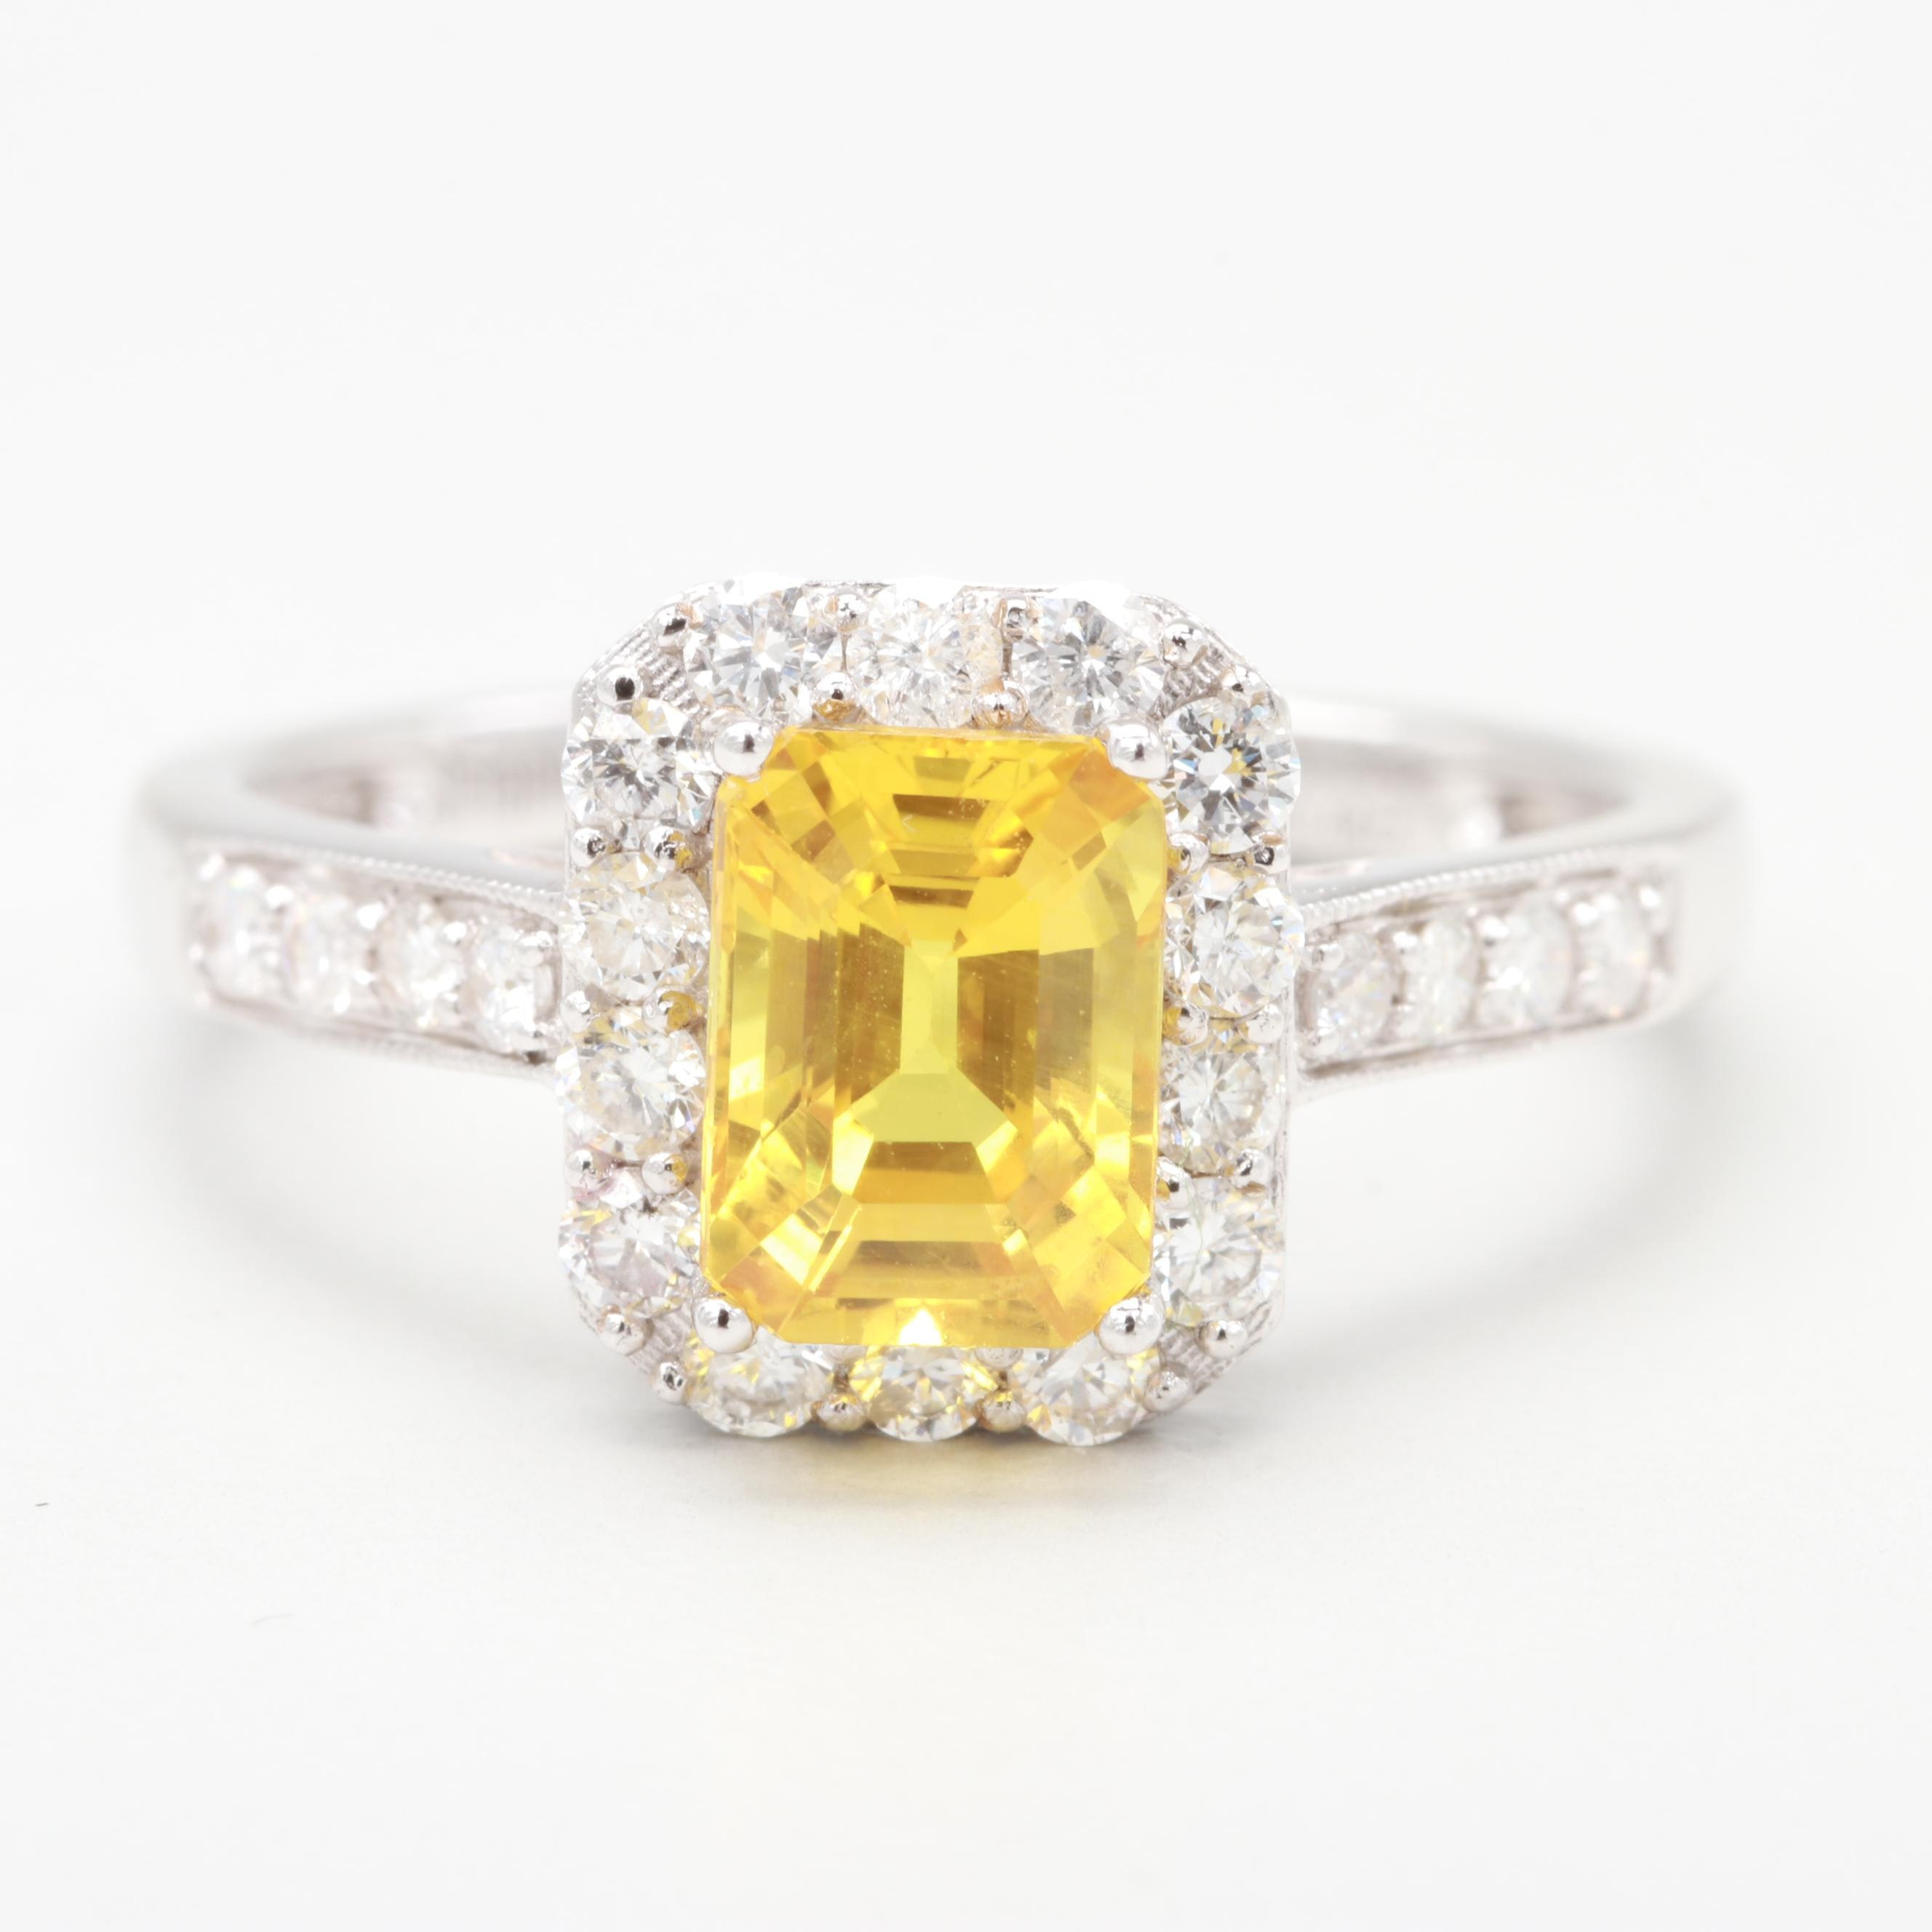 18K White Gold 1.53 CT Yellow Sapphire and Diamond Ring